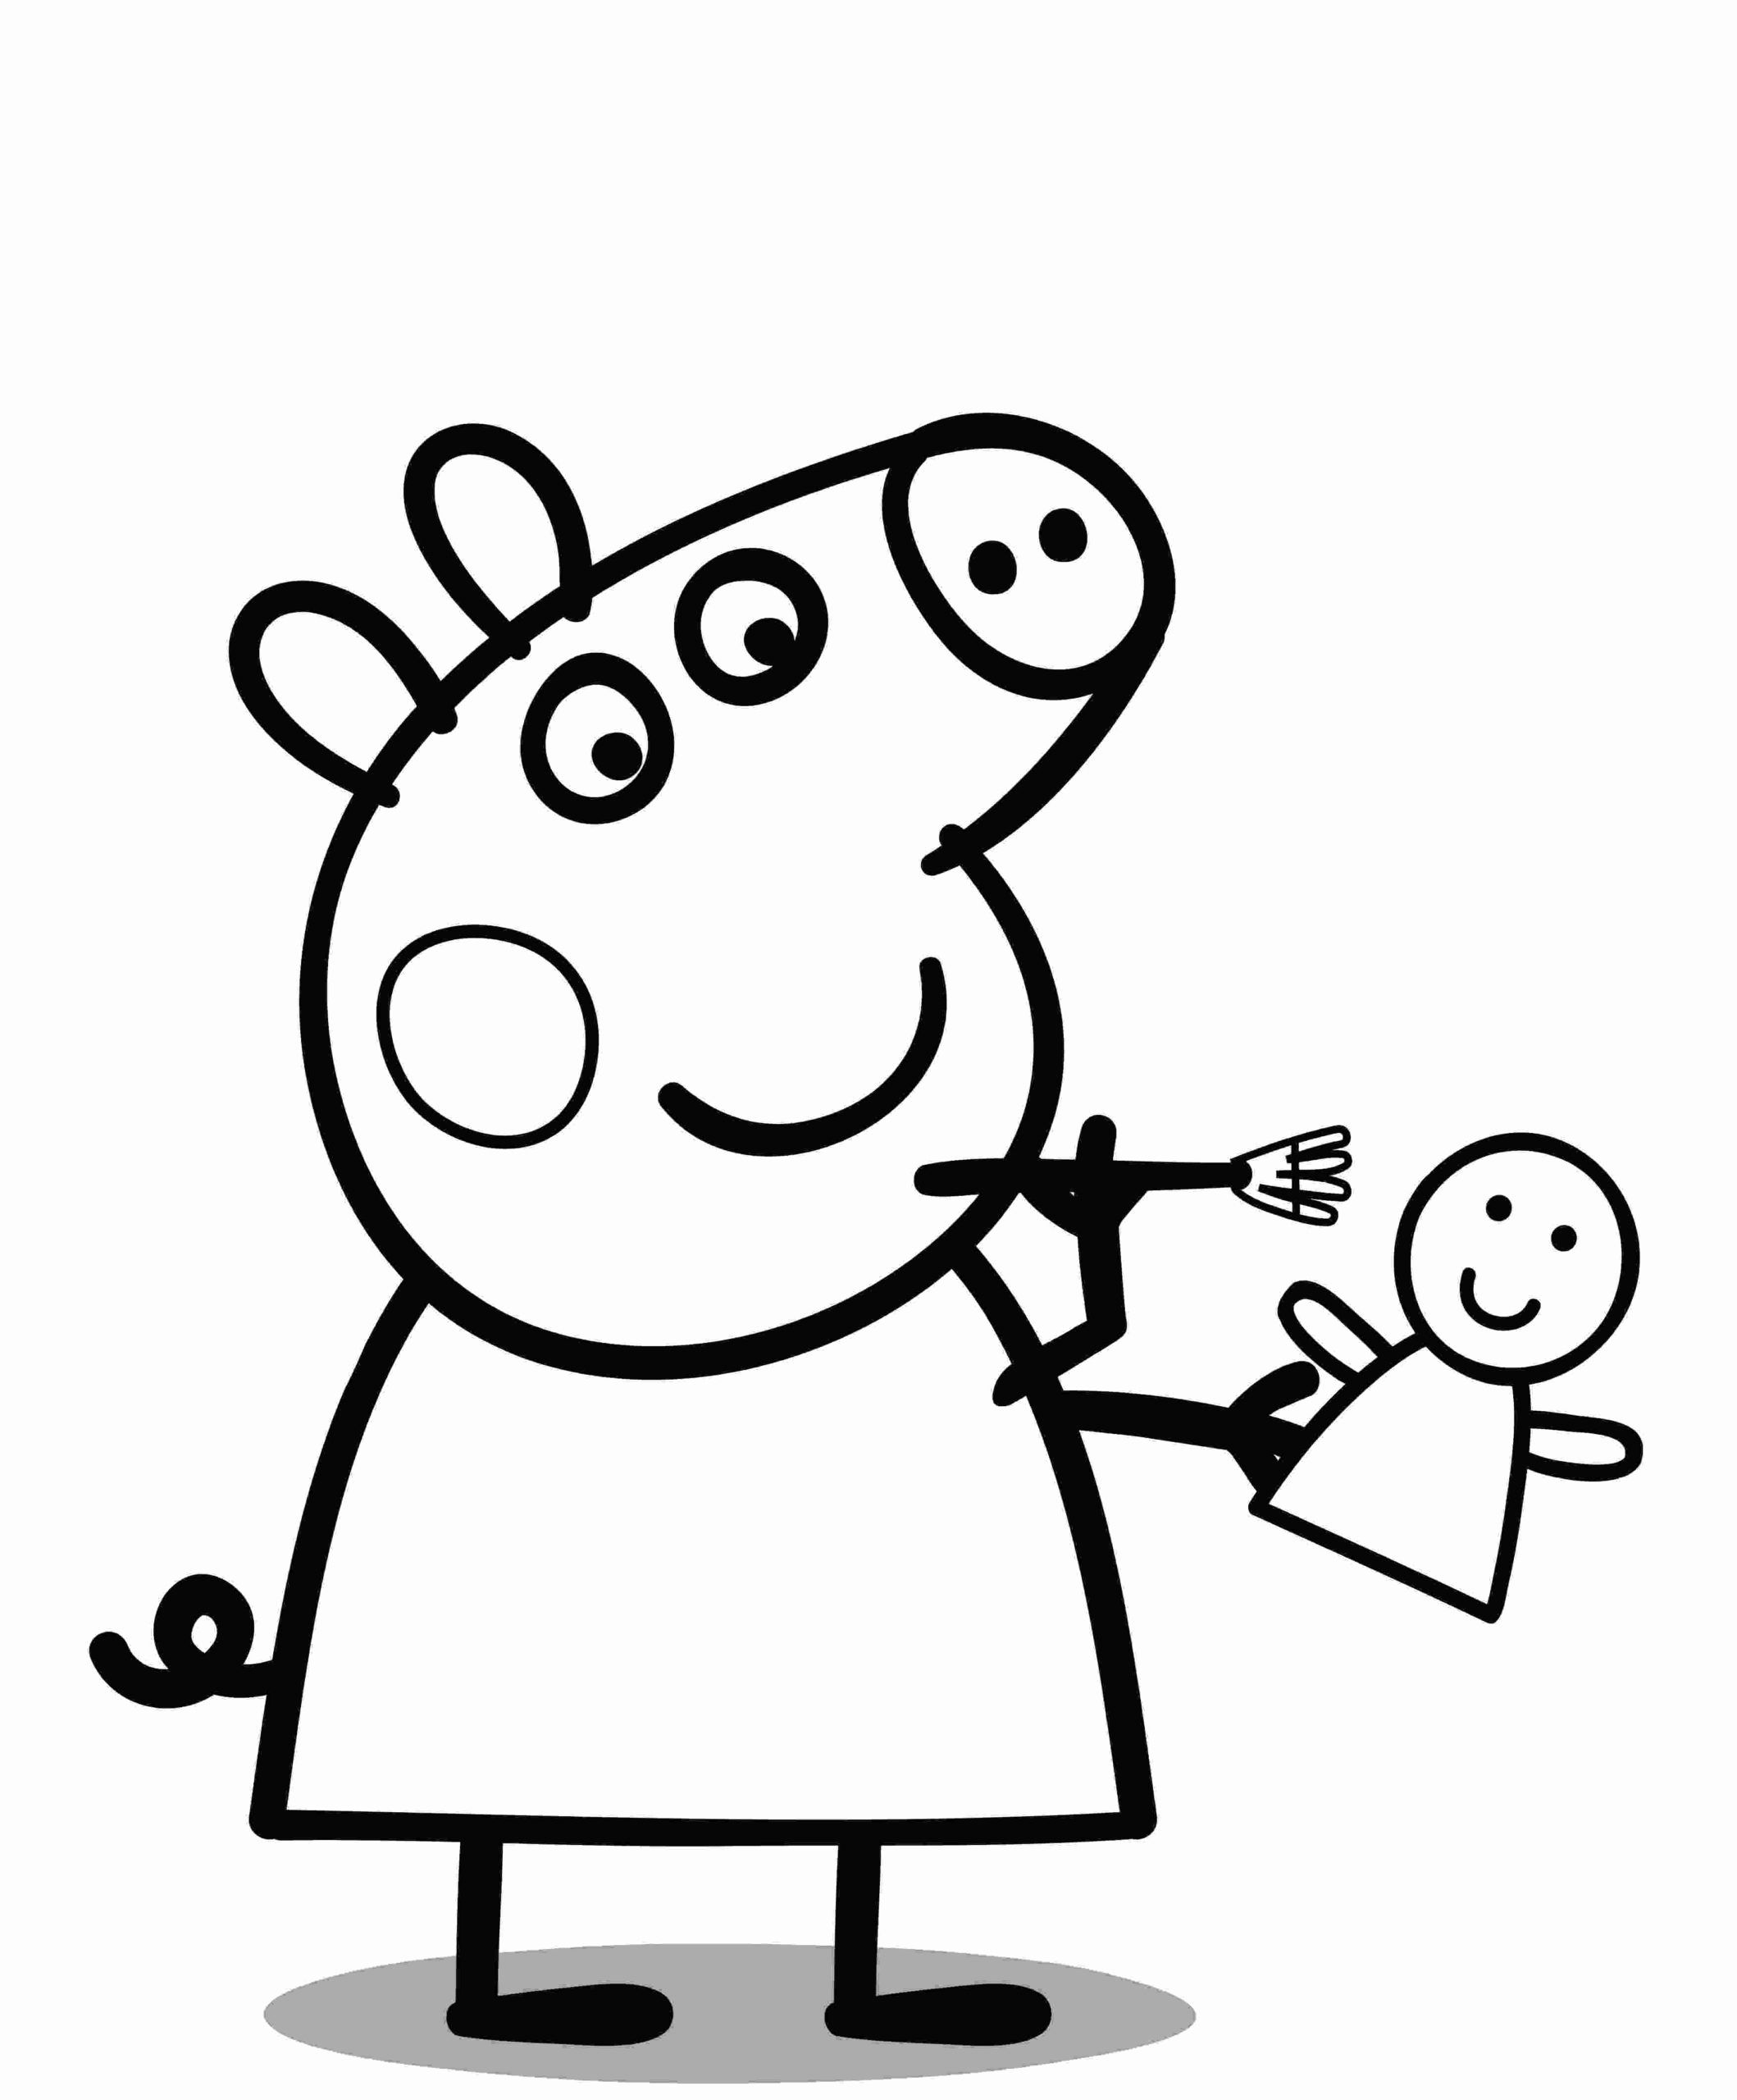 peppa pig pictures for colouring 30 printable peppa pig coloring pages you won39t find anywhere pig colouring for pictures peppa